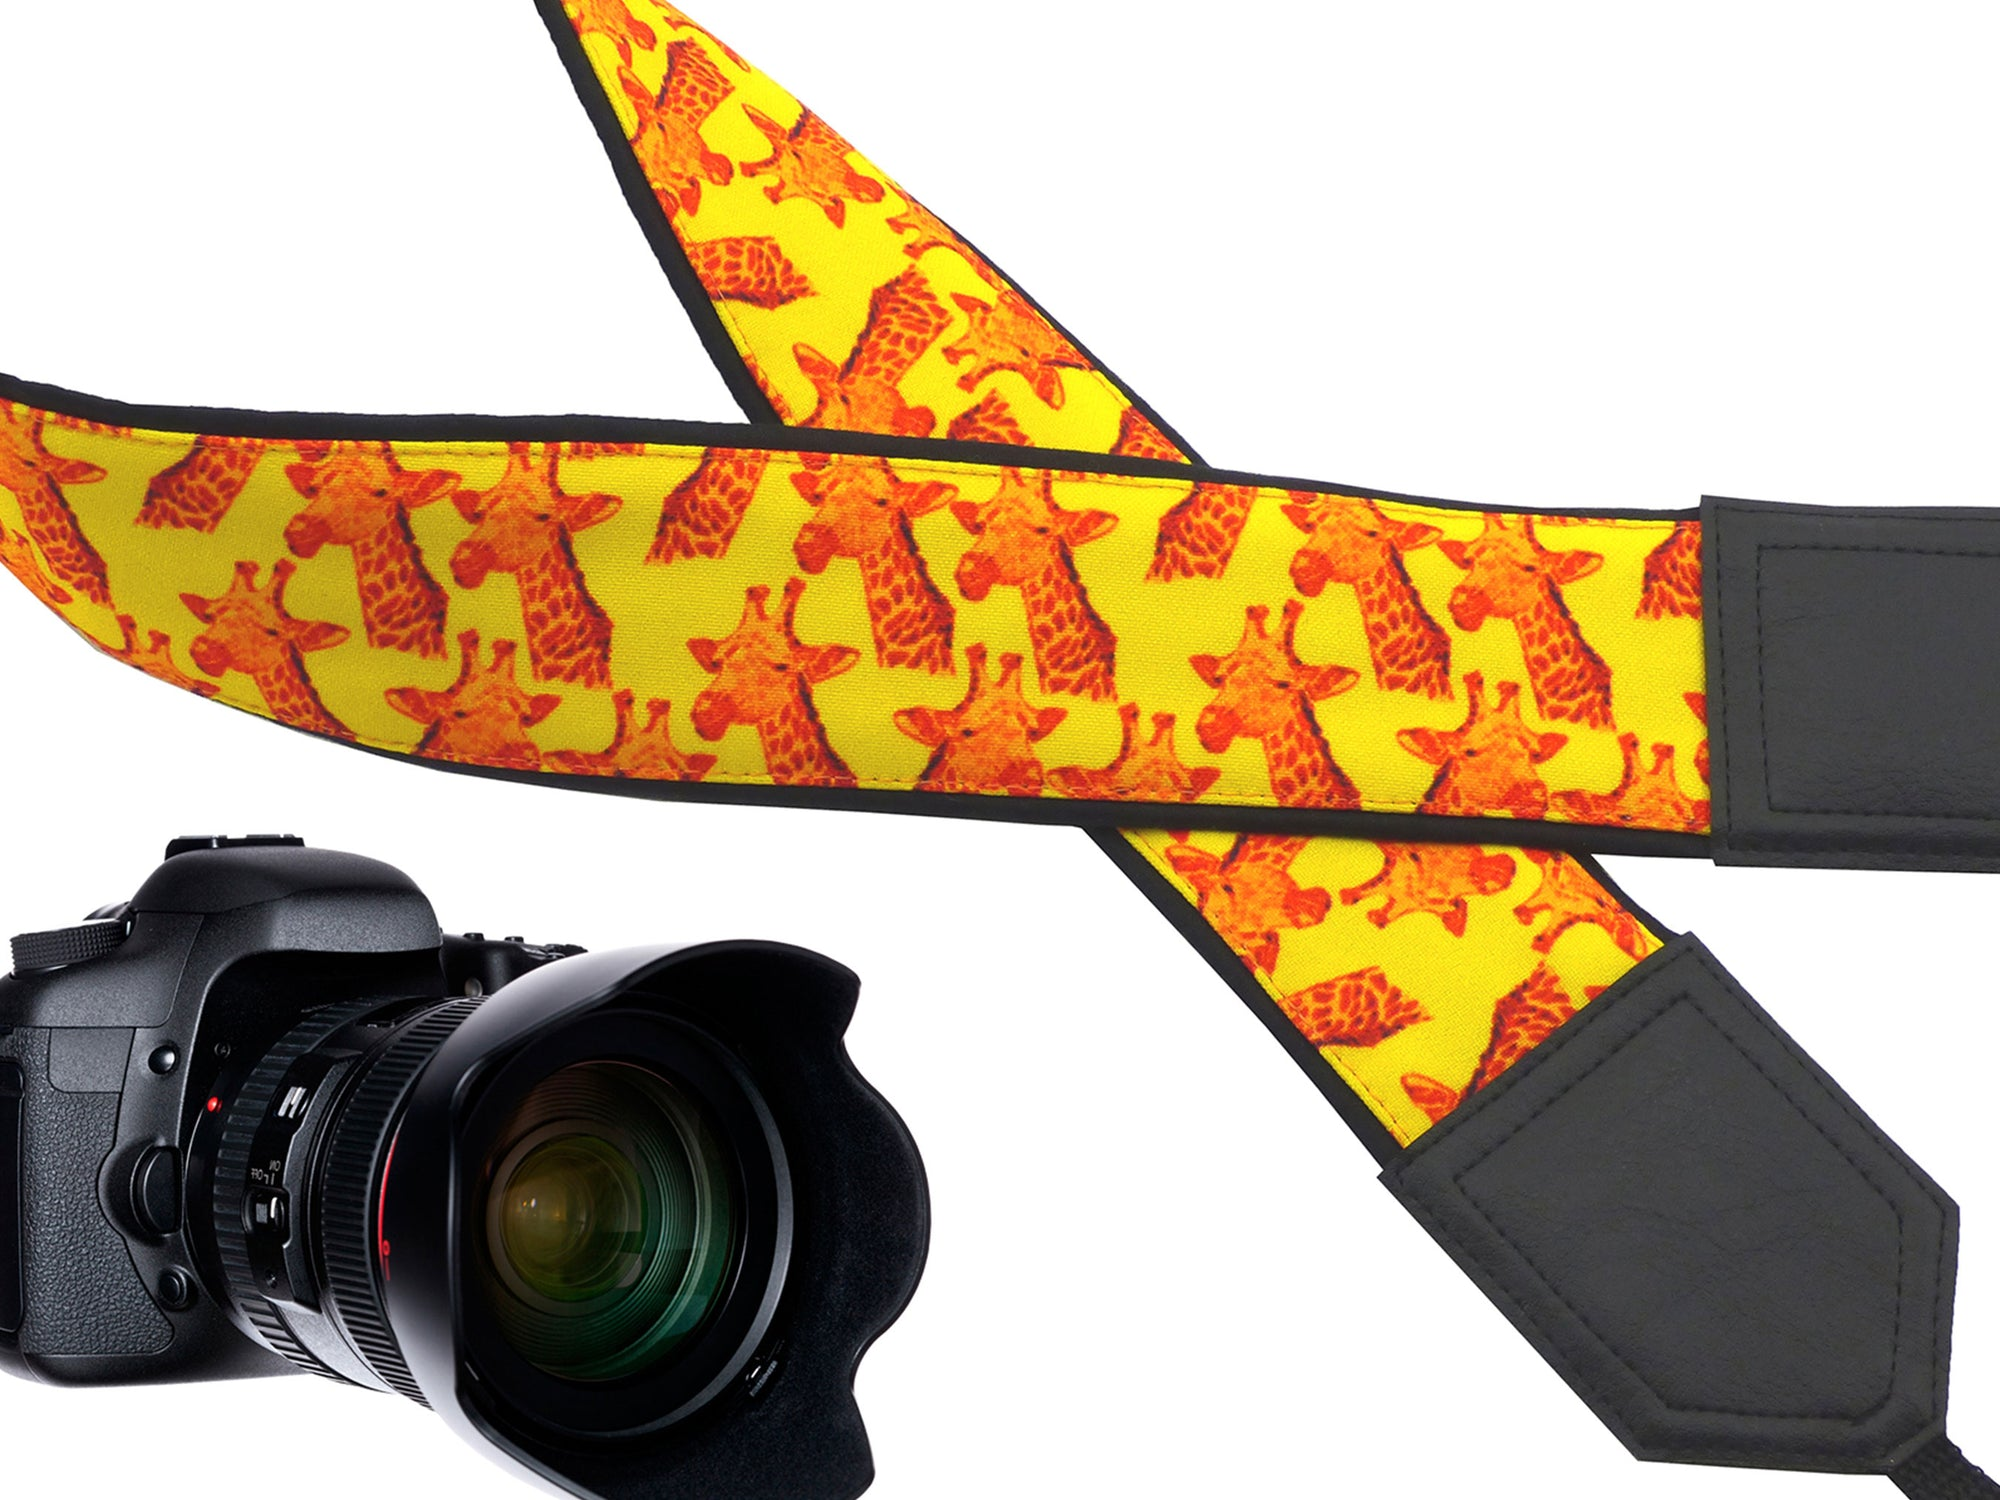 Camera strap with giraffe design. Bright yellow & orange camera strap. DSLR / SLR. Padded camera strap. Personalized camera strap by InTePro